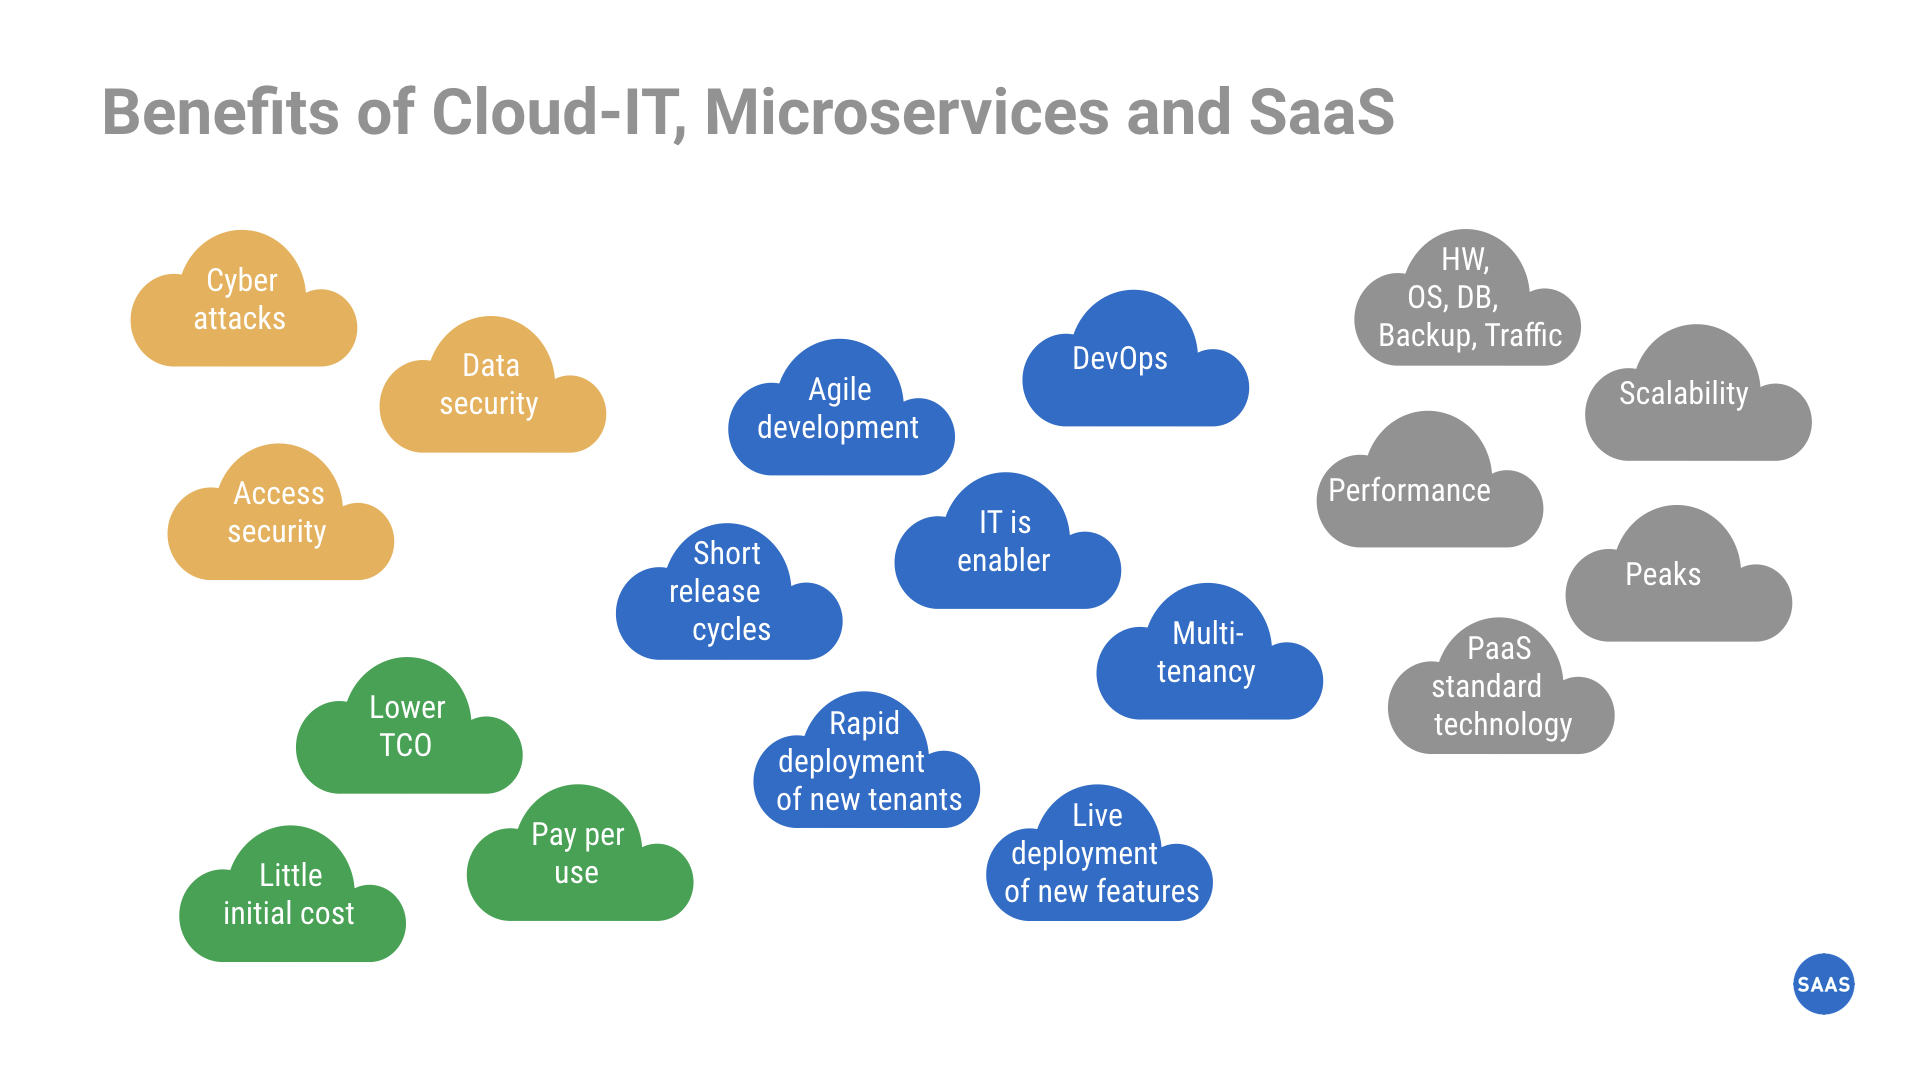 Benefits of Cloud-IT, Microservices and SaaS